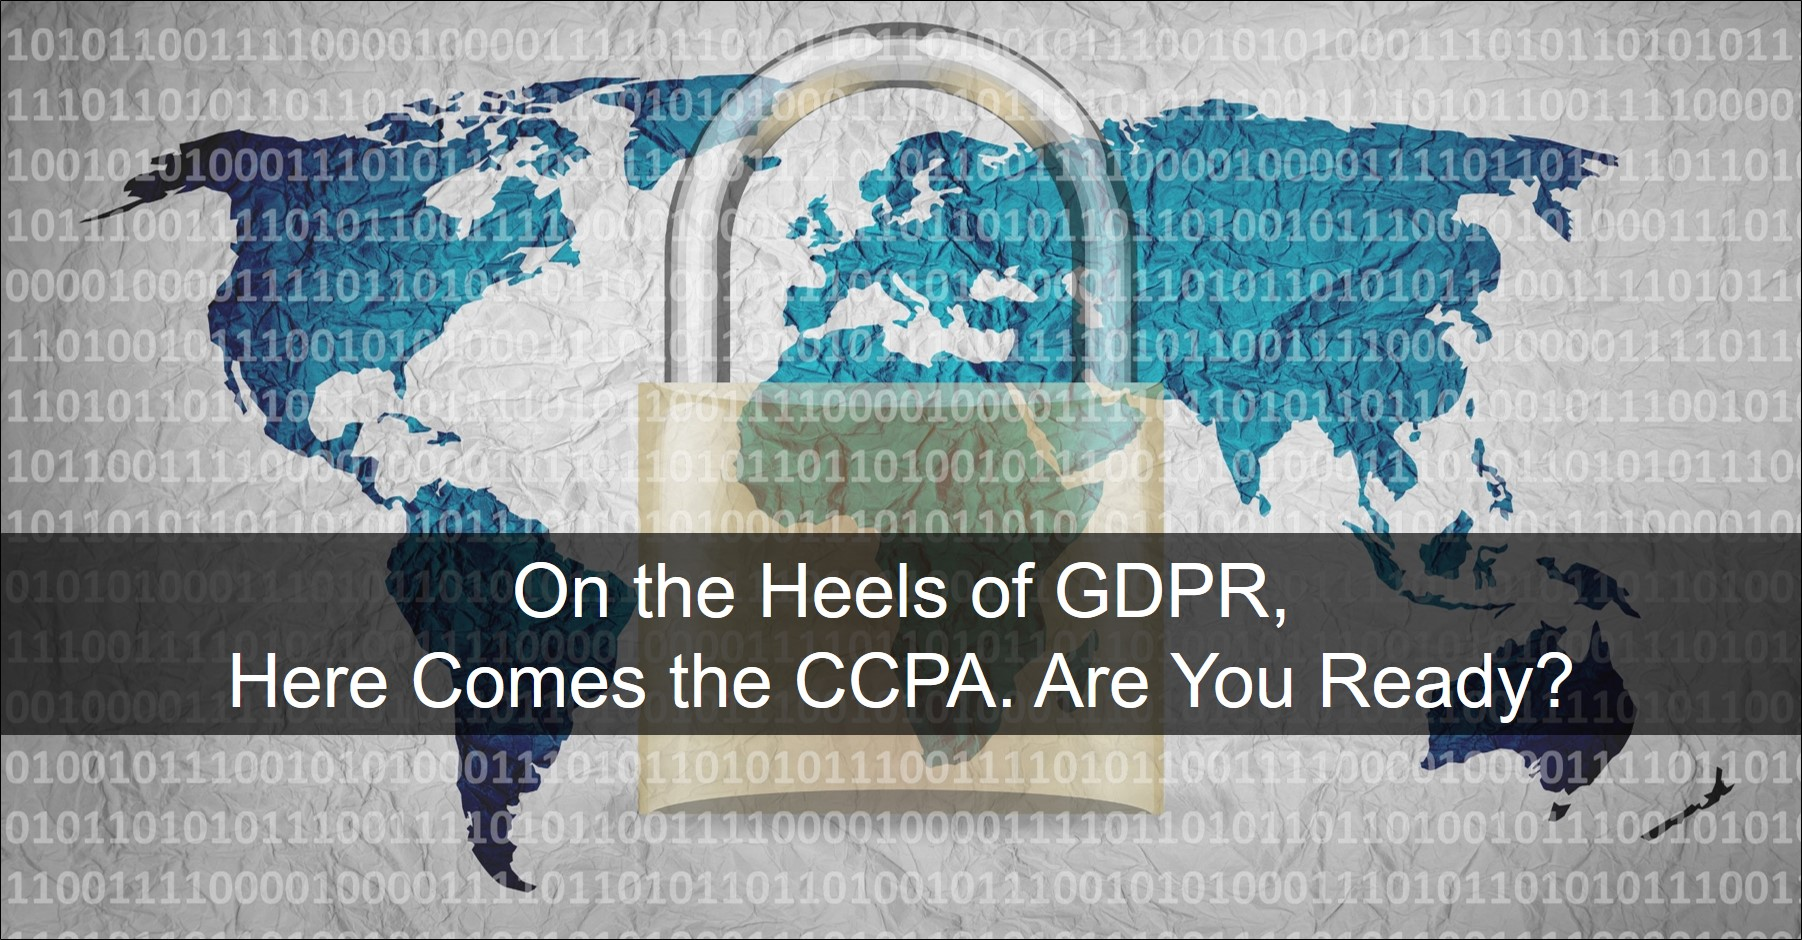 On the Heels of GDPR, Here comes the CCPA. Are you ready?